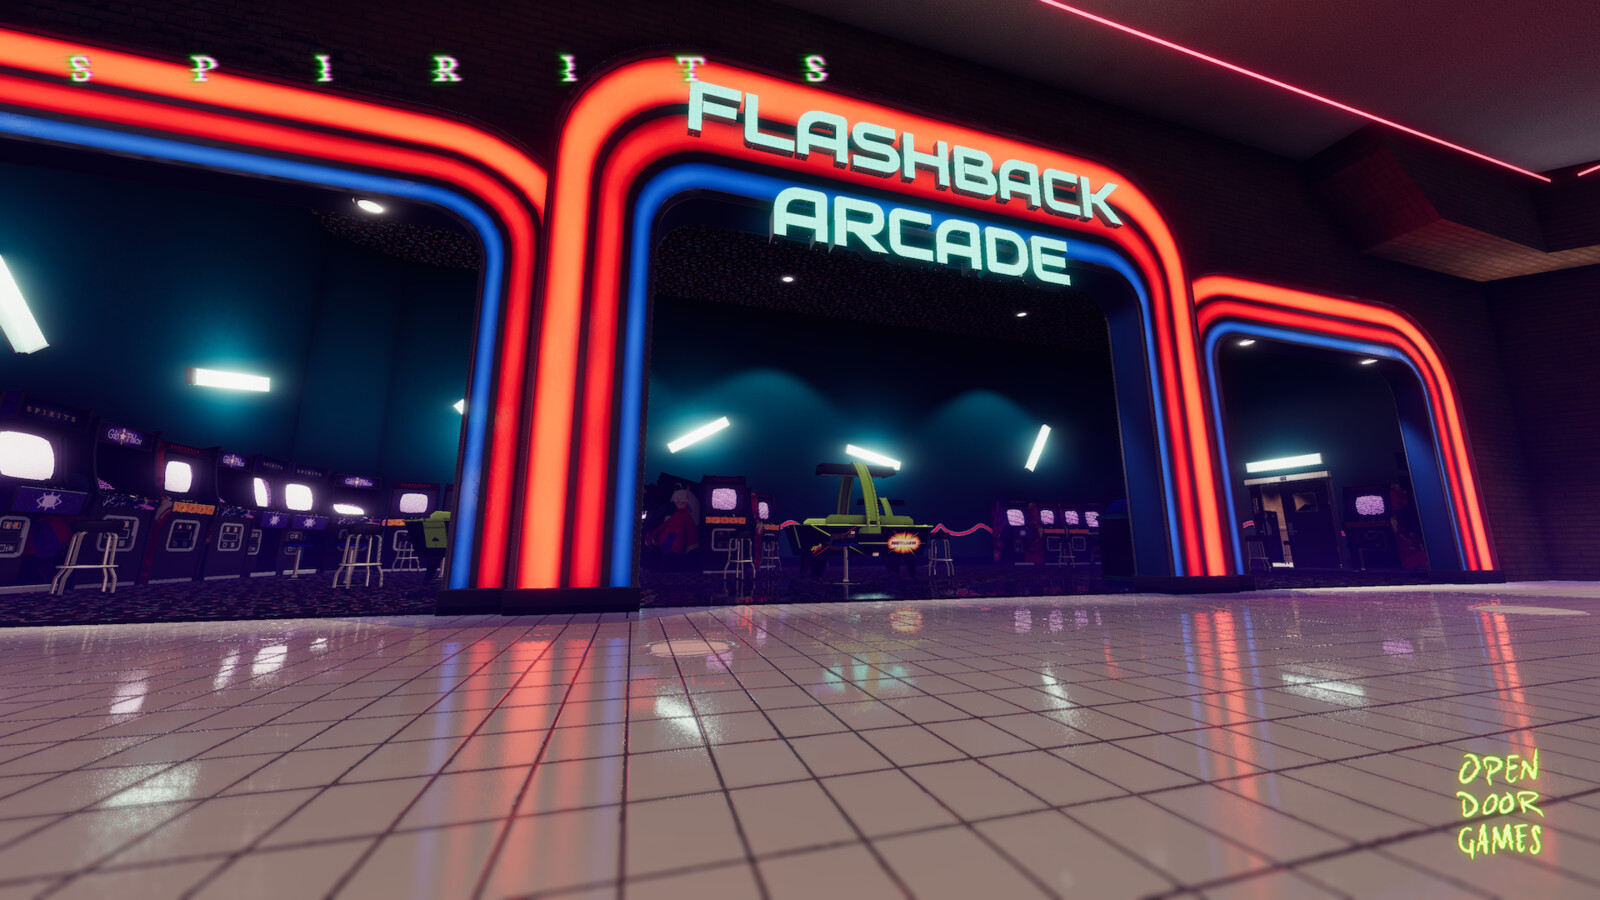 Flashback Arcade is designed as a world of its own, with easy access for the boss it drives combat while delivering a lot of unique atmosphere.